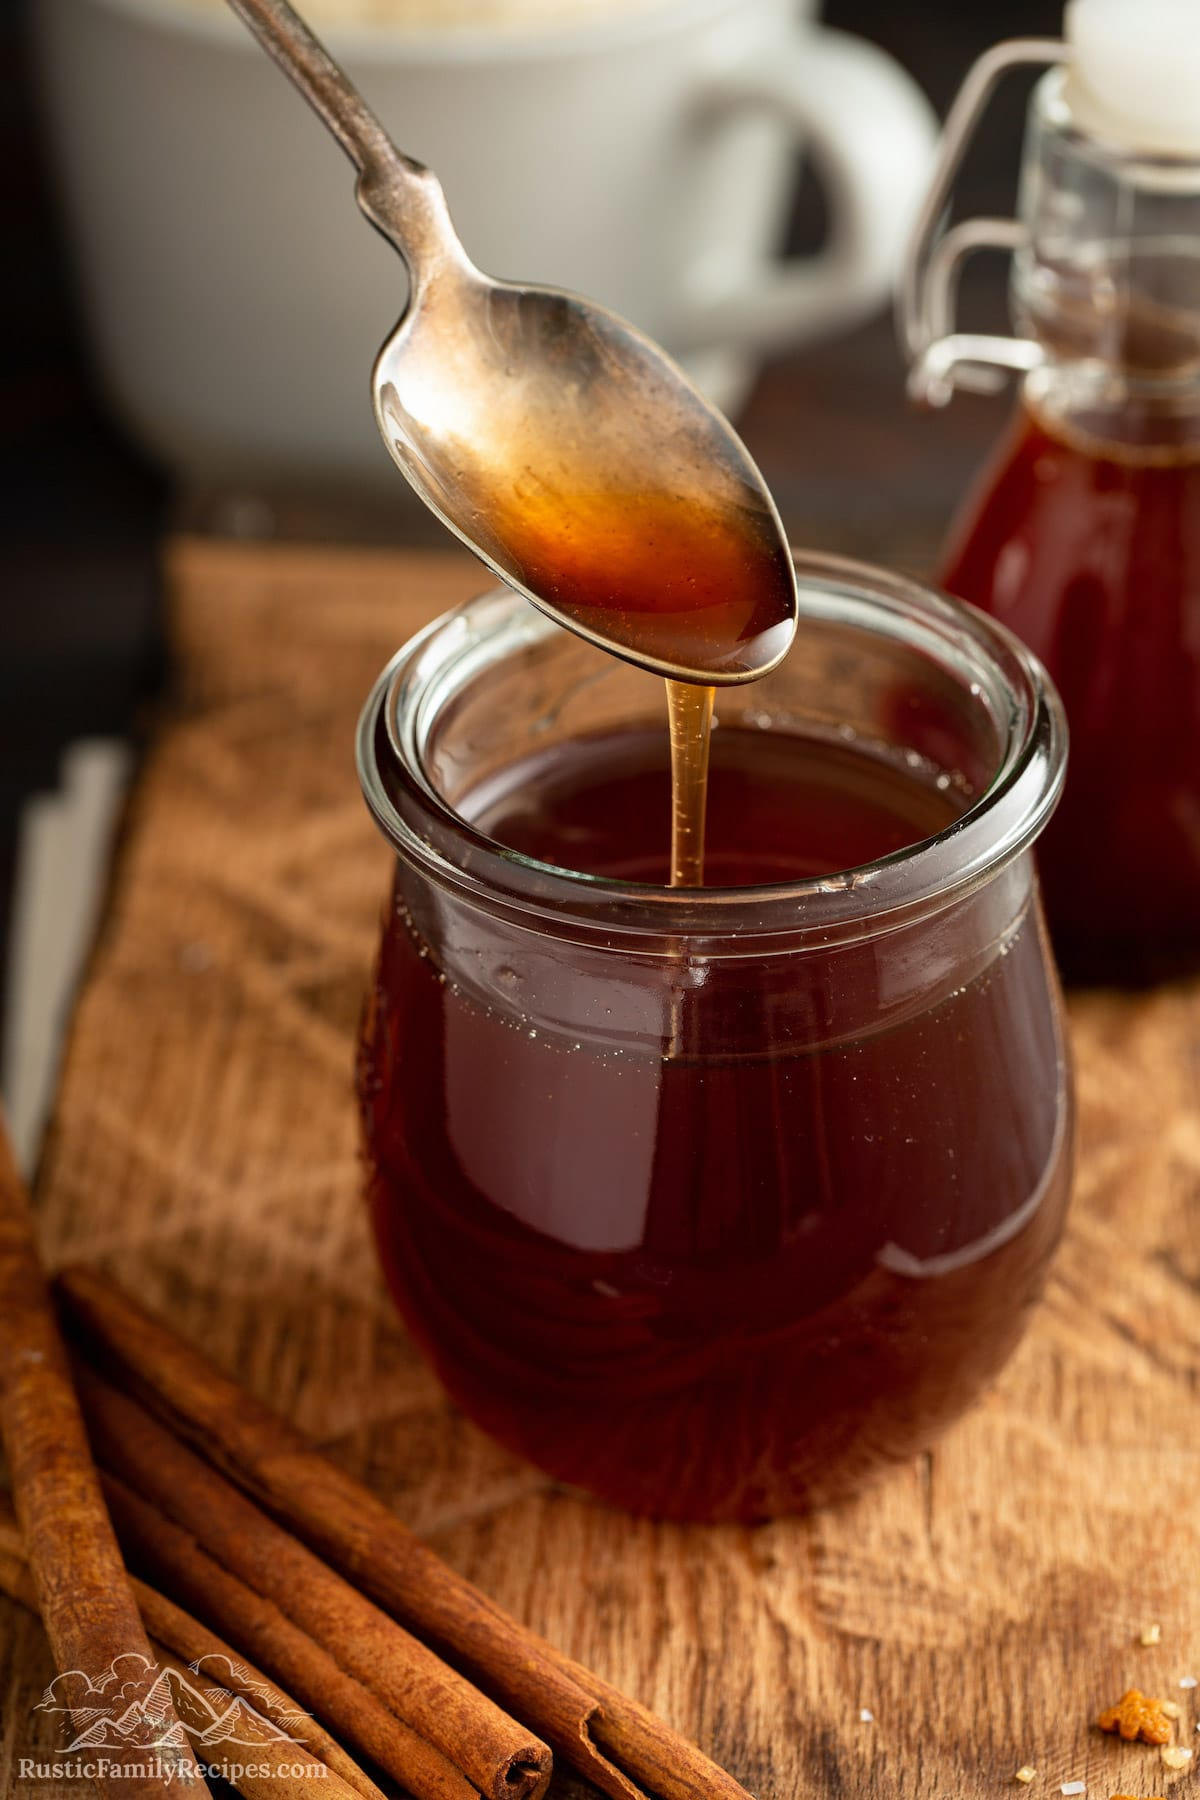 A spoon pouring gingerbread syrup into a jar.